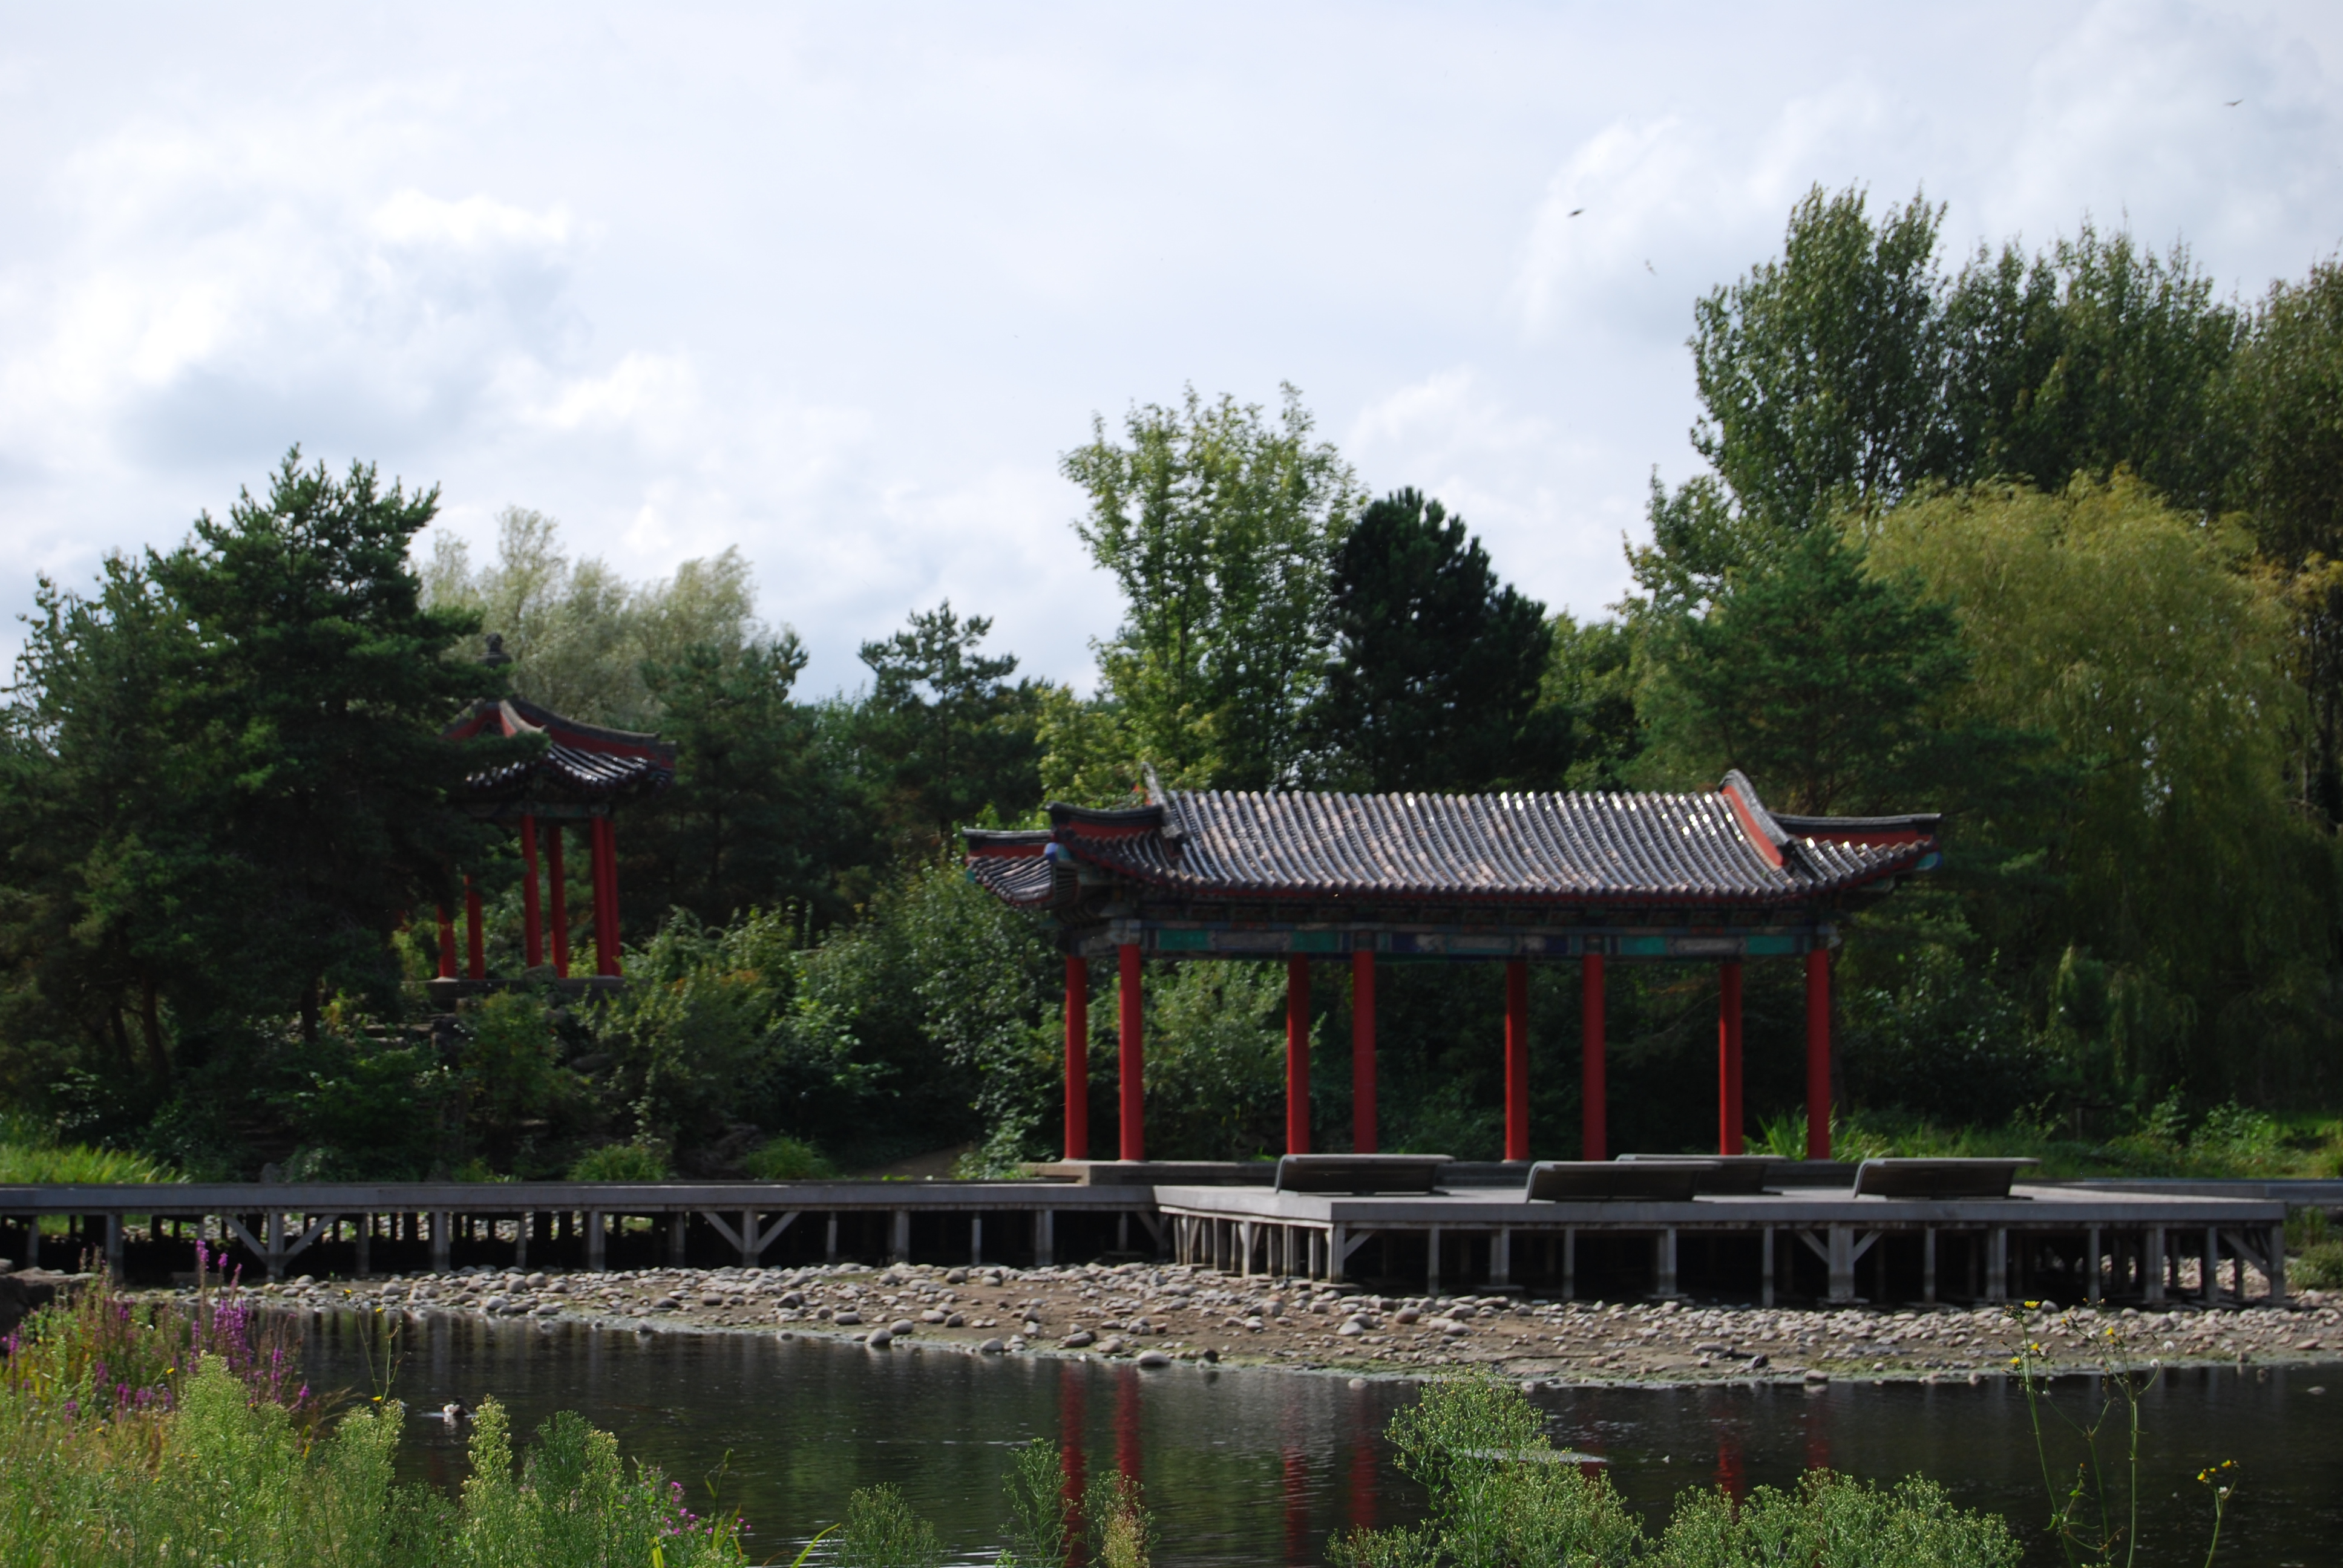 Pagoda at Liverpool Festival Gardens